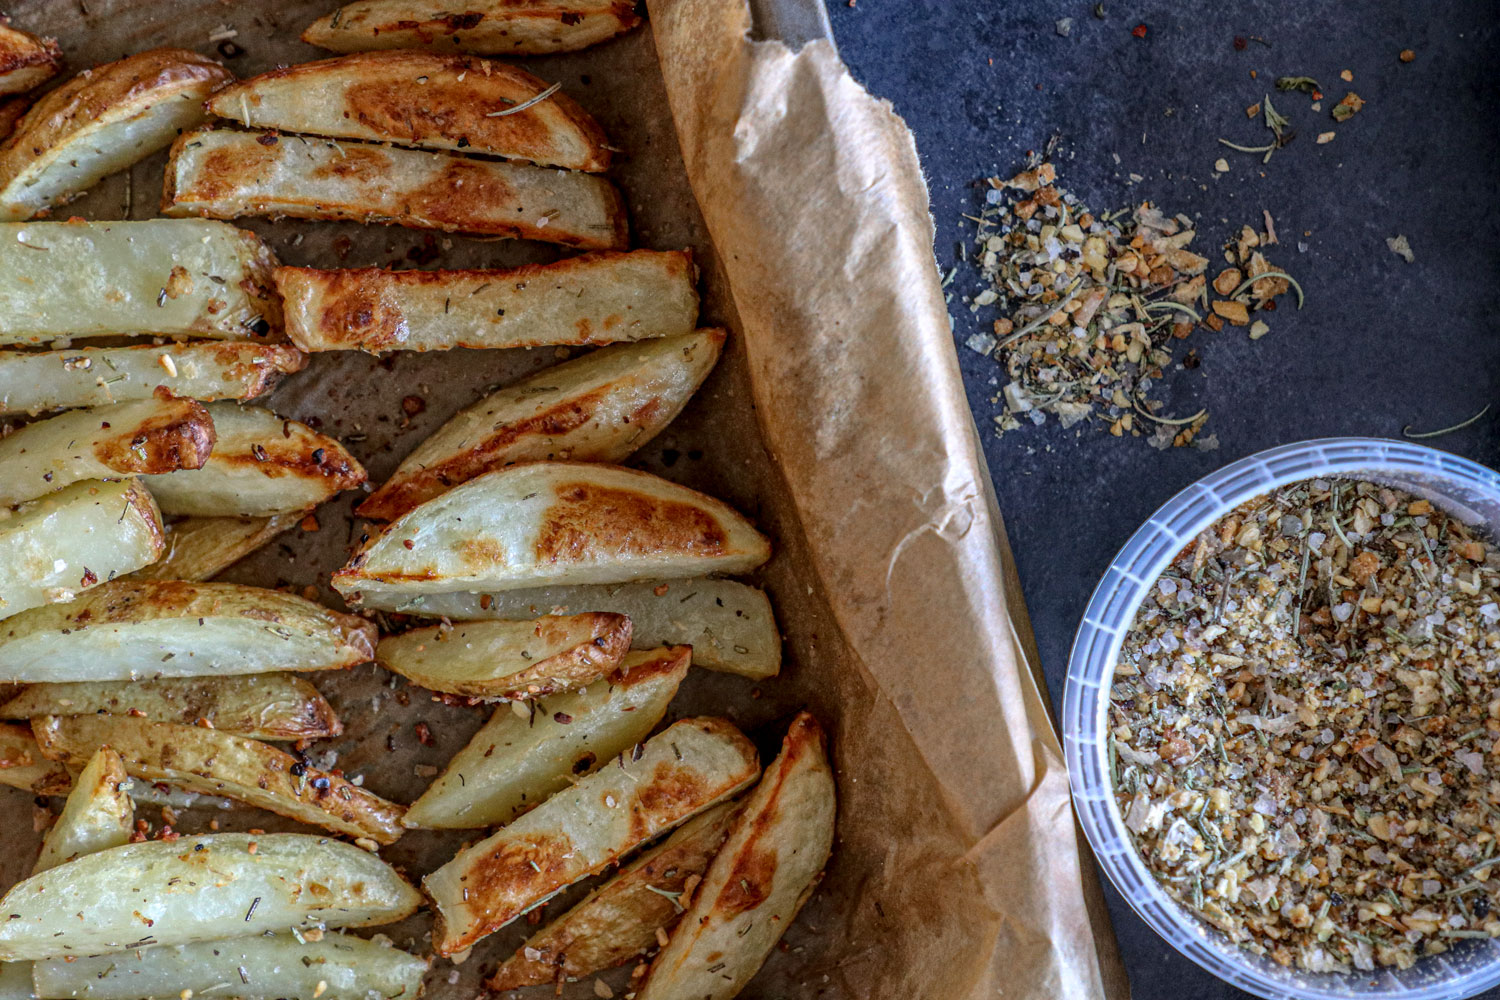 Cooked Rosemary spiced Potato wedges